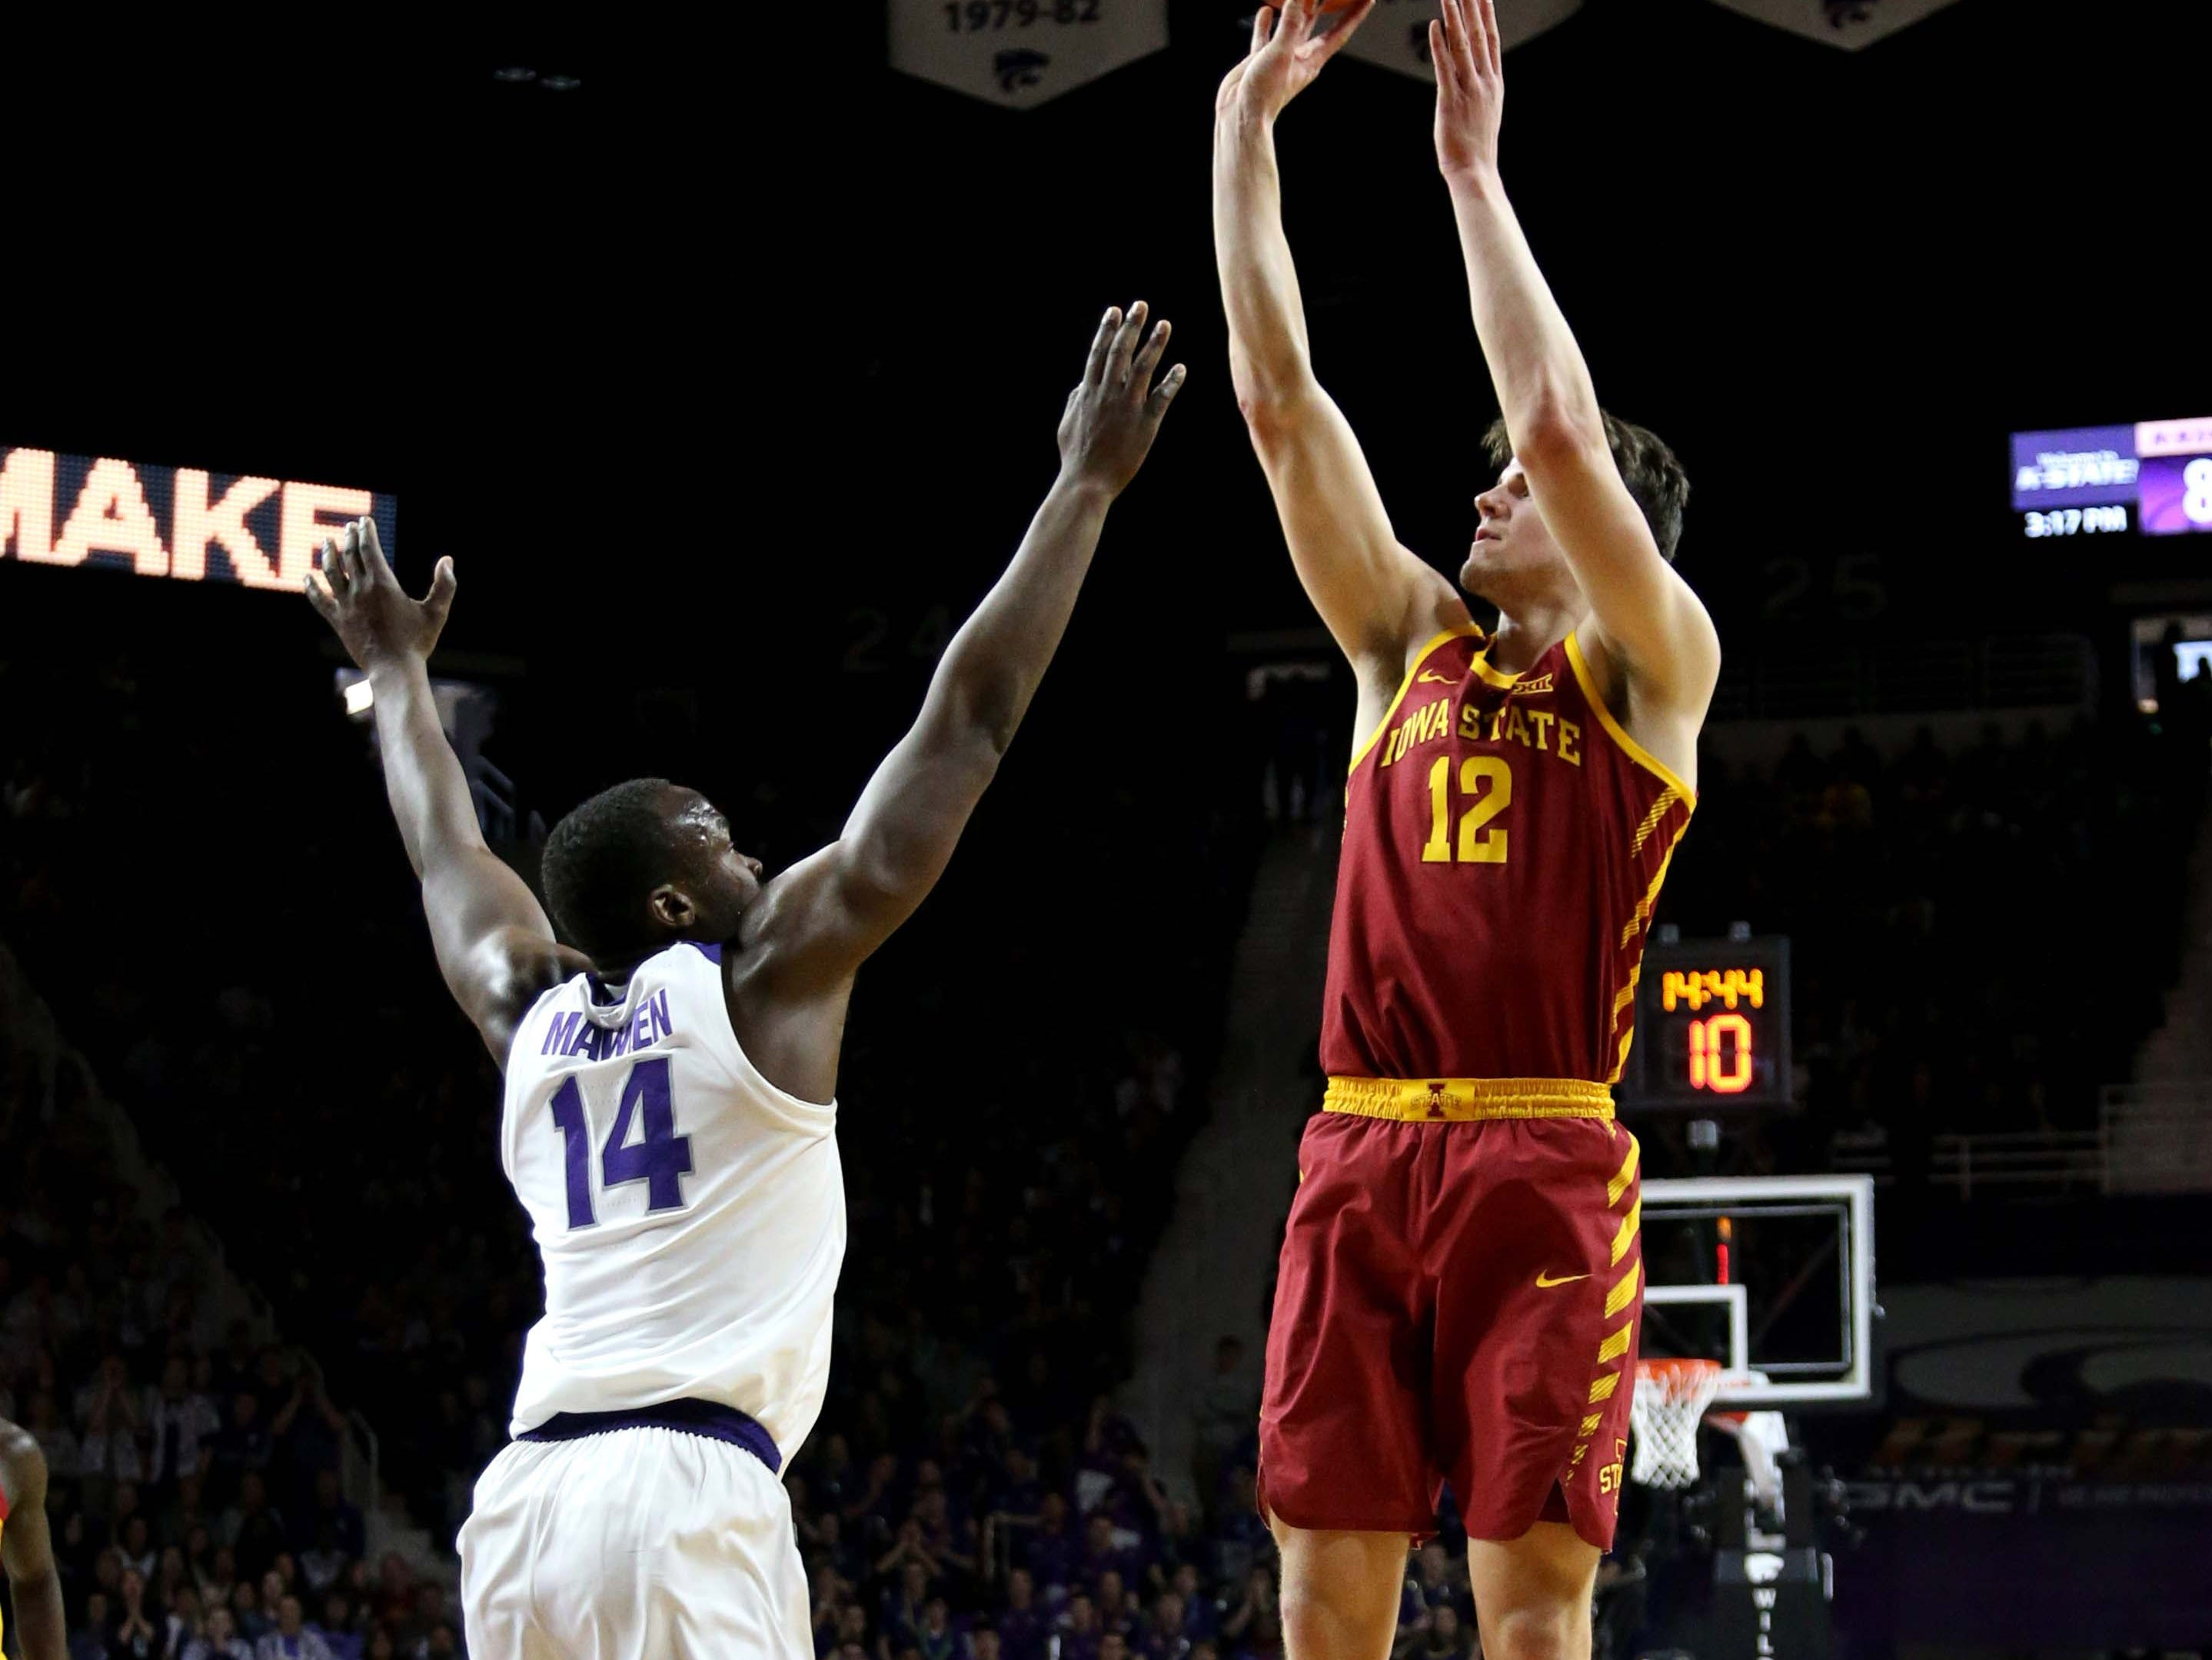 Feb 16, 2019; Manhattan, KS, USA; Iowa State Cyclones forward Michael Jacobson (12) shoots over Kansas State Wildcats forward Makol Mawien (14) during the first half at Bramlage Coliseum.